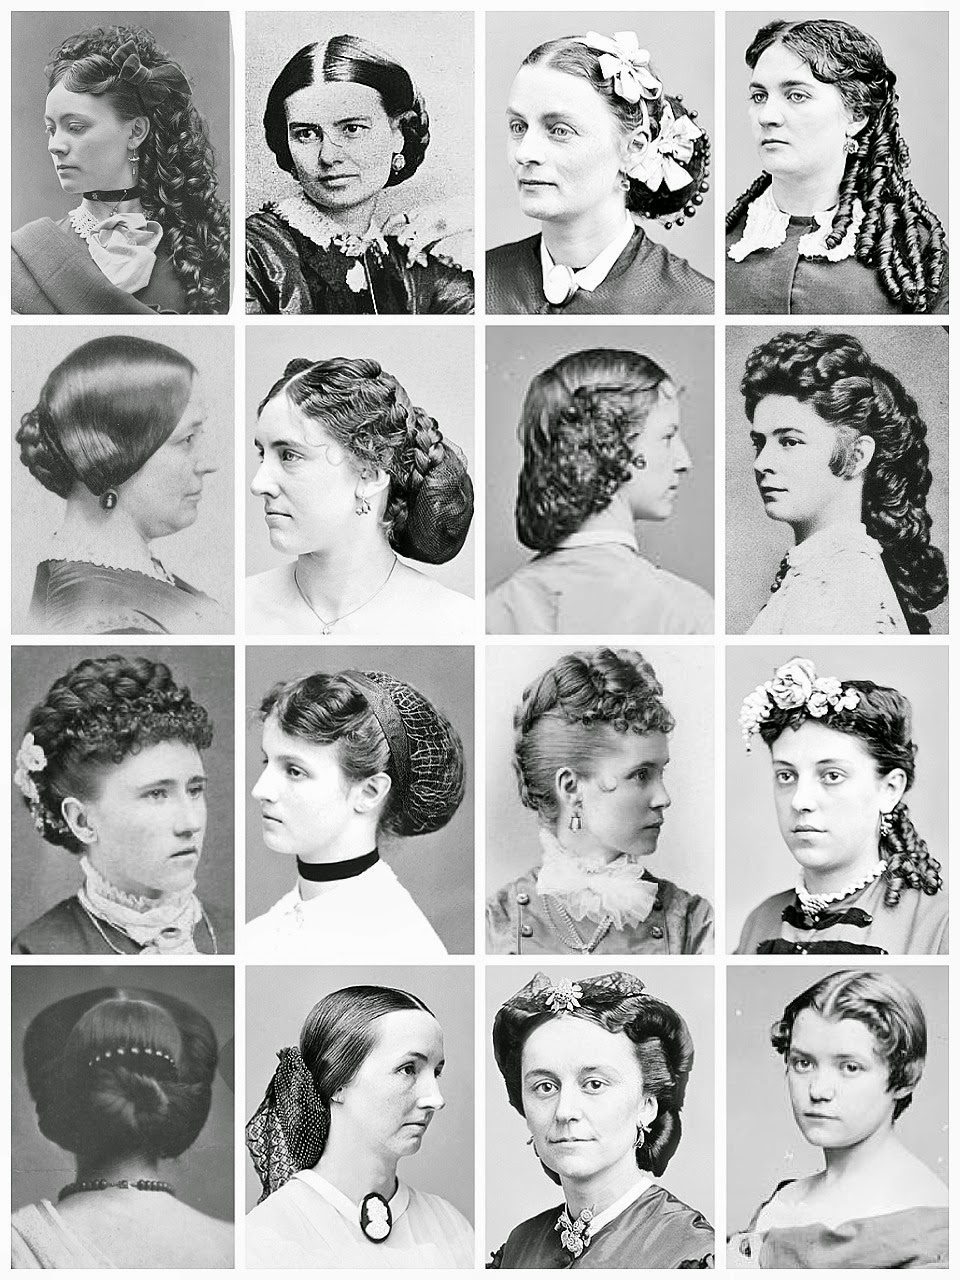 Swell Gothic Horror Mid Late Victorian Hairstyles 186039S 189039S Short Hairstyles For Black Women Fulllsitofus